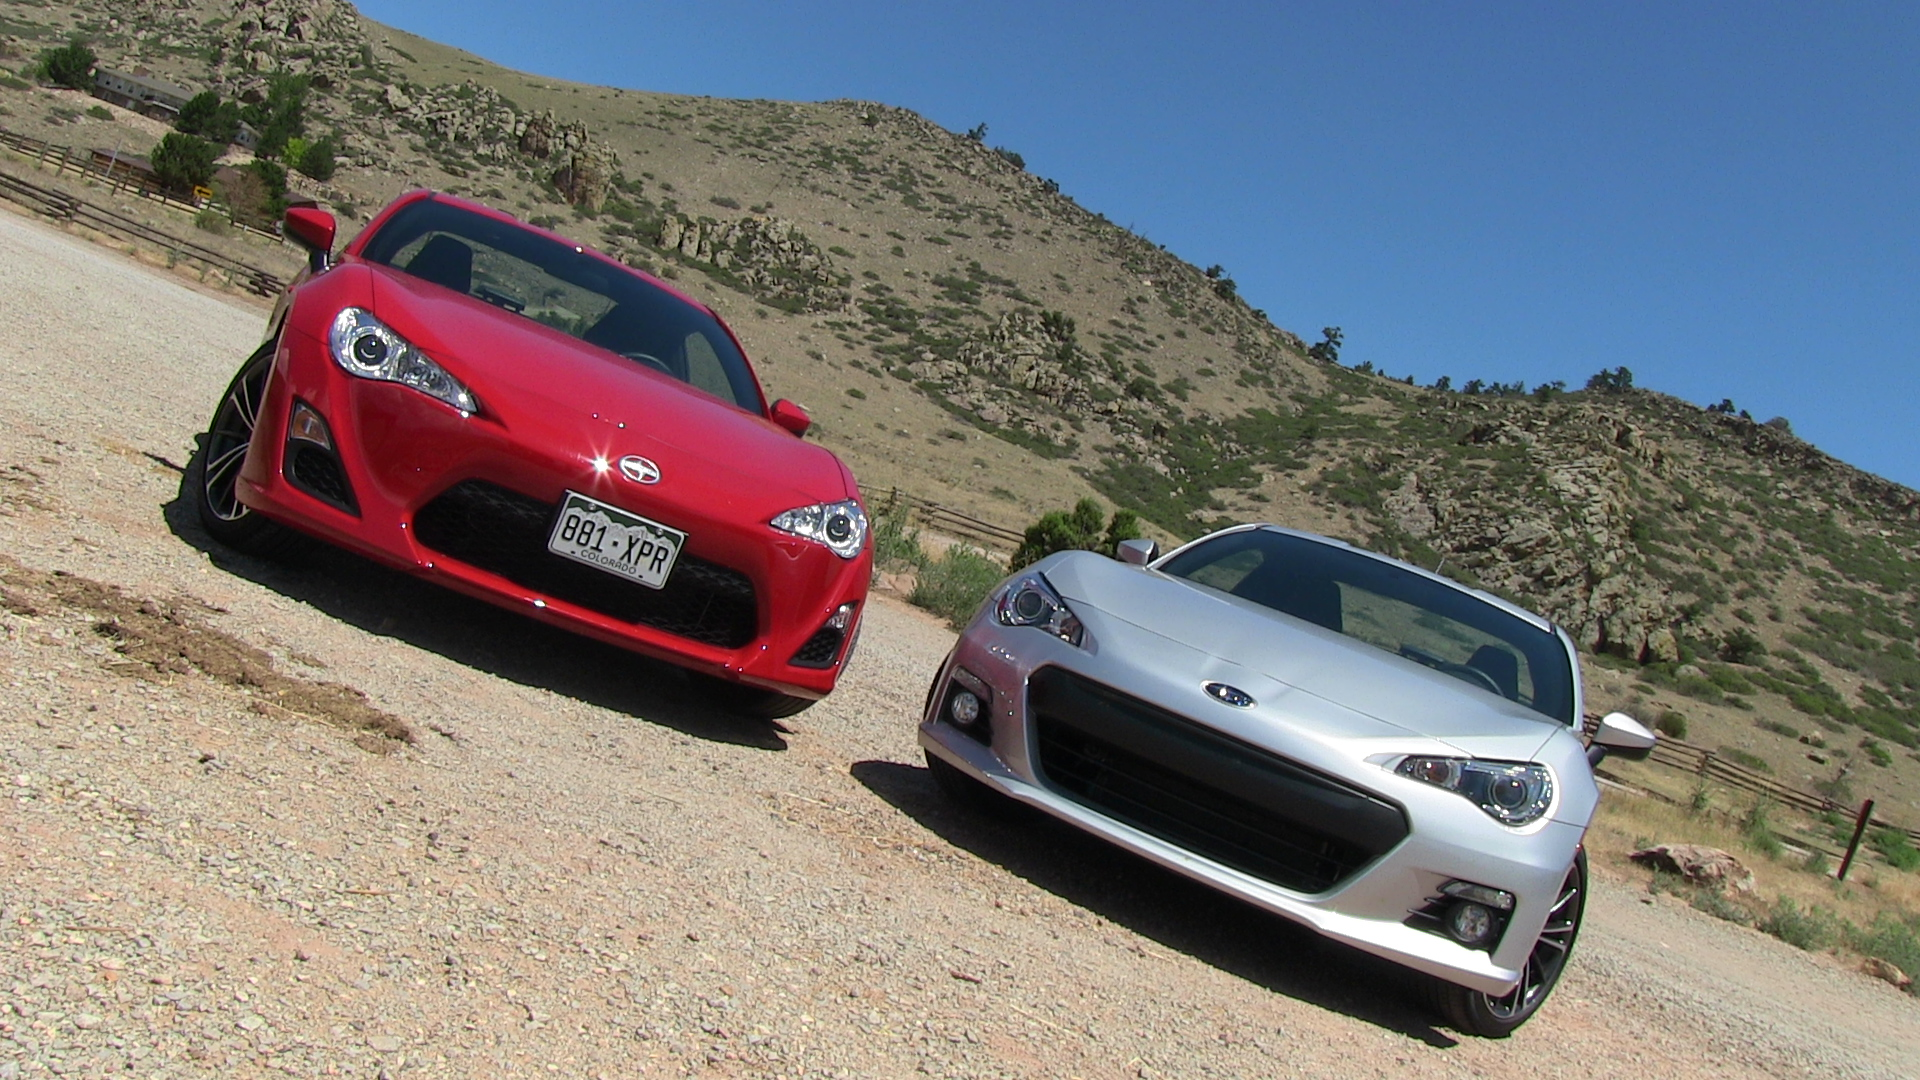 2013 Subaru Brz Vs Scion Fr S 0 60 Mph Mile High Mashup Review The